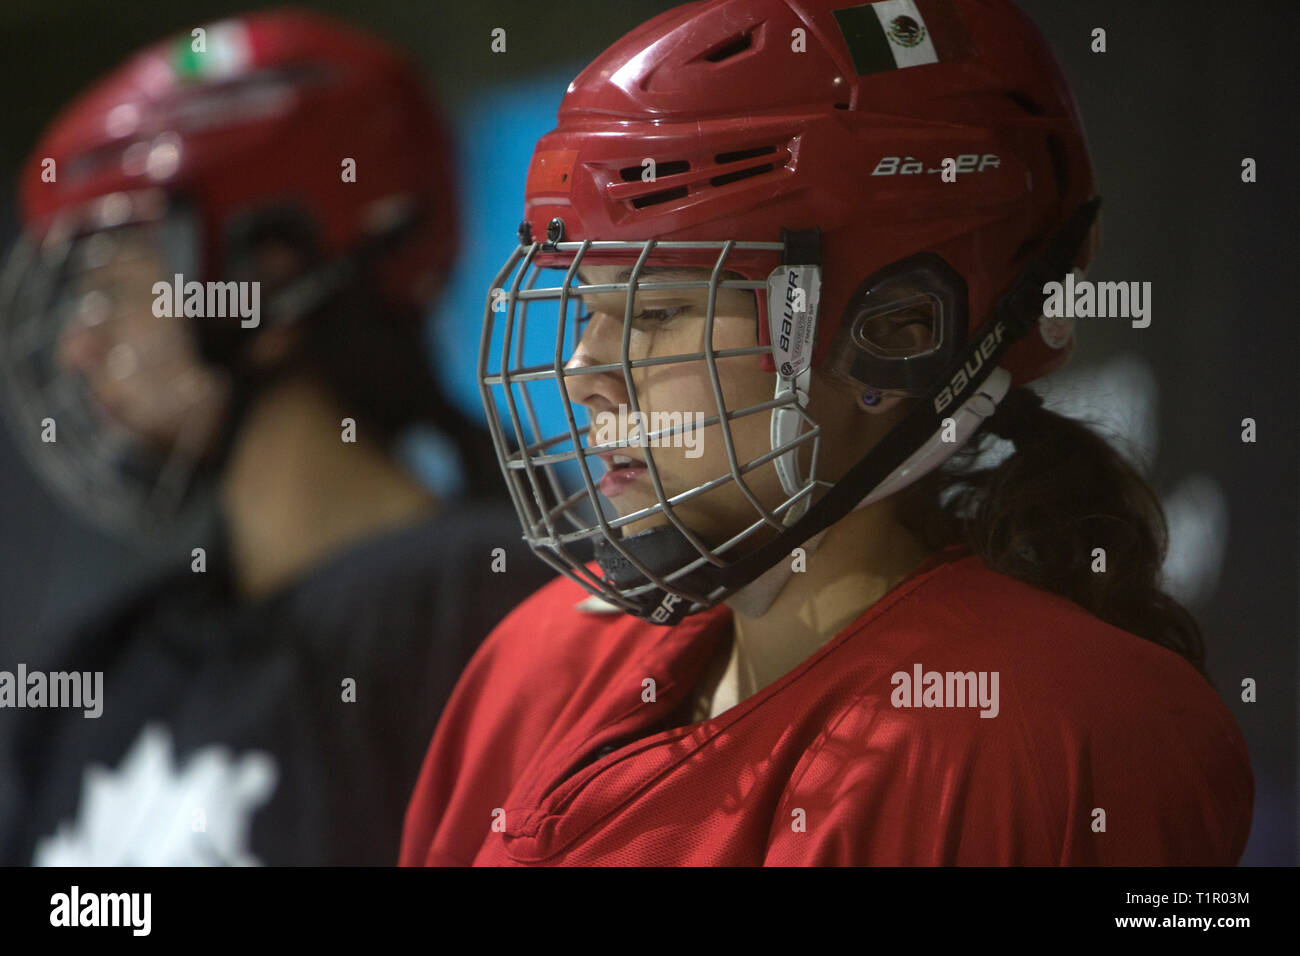 Samantha Nevarez Puente (R), 16, one of the forwards of the Selección femenil de México de hockey sobre hielo, during a training session at the San Jerónimo ice rink in Mexico City, Mexico on October 2, 2018. The team have trainings every Tuesday and Thursday from 10.30 pm to midnight. Twenty five women and girls from the ages of 16 to 34 train to be drafted in the 19 – strong team that will go to the 2019 IIHF Women's World Championship Division II in Scotland in April 2019. Founded in 2012, the Selección femenil de México de hockey sobre hielo is the first and only women's national ice hocke Stock Photo